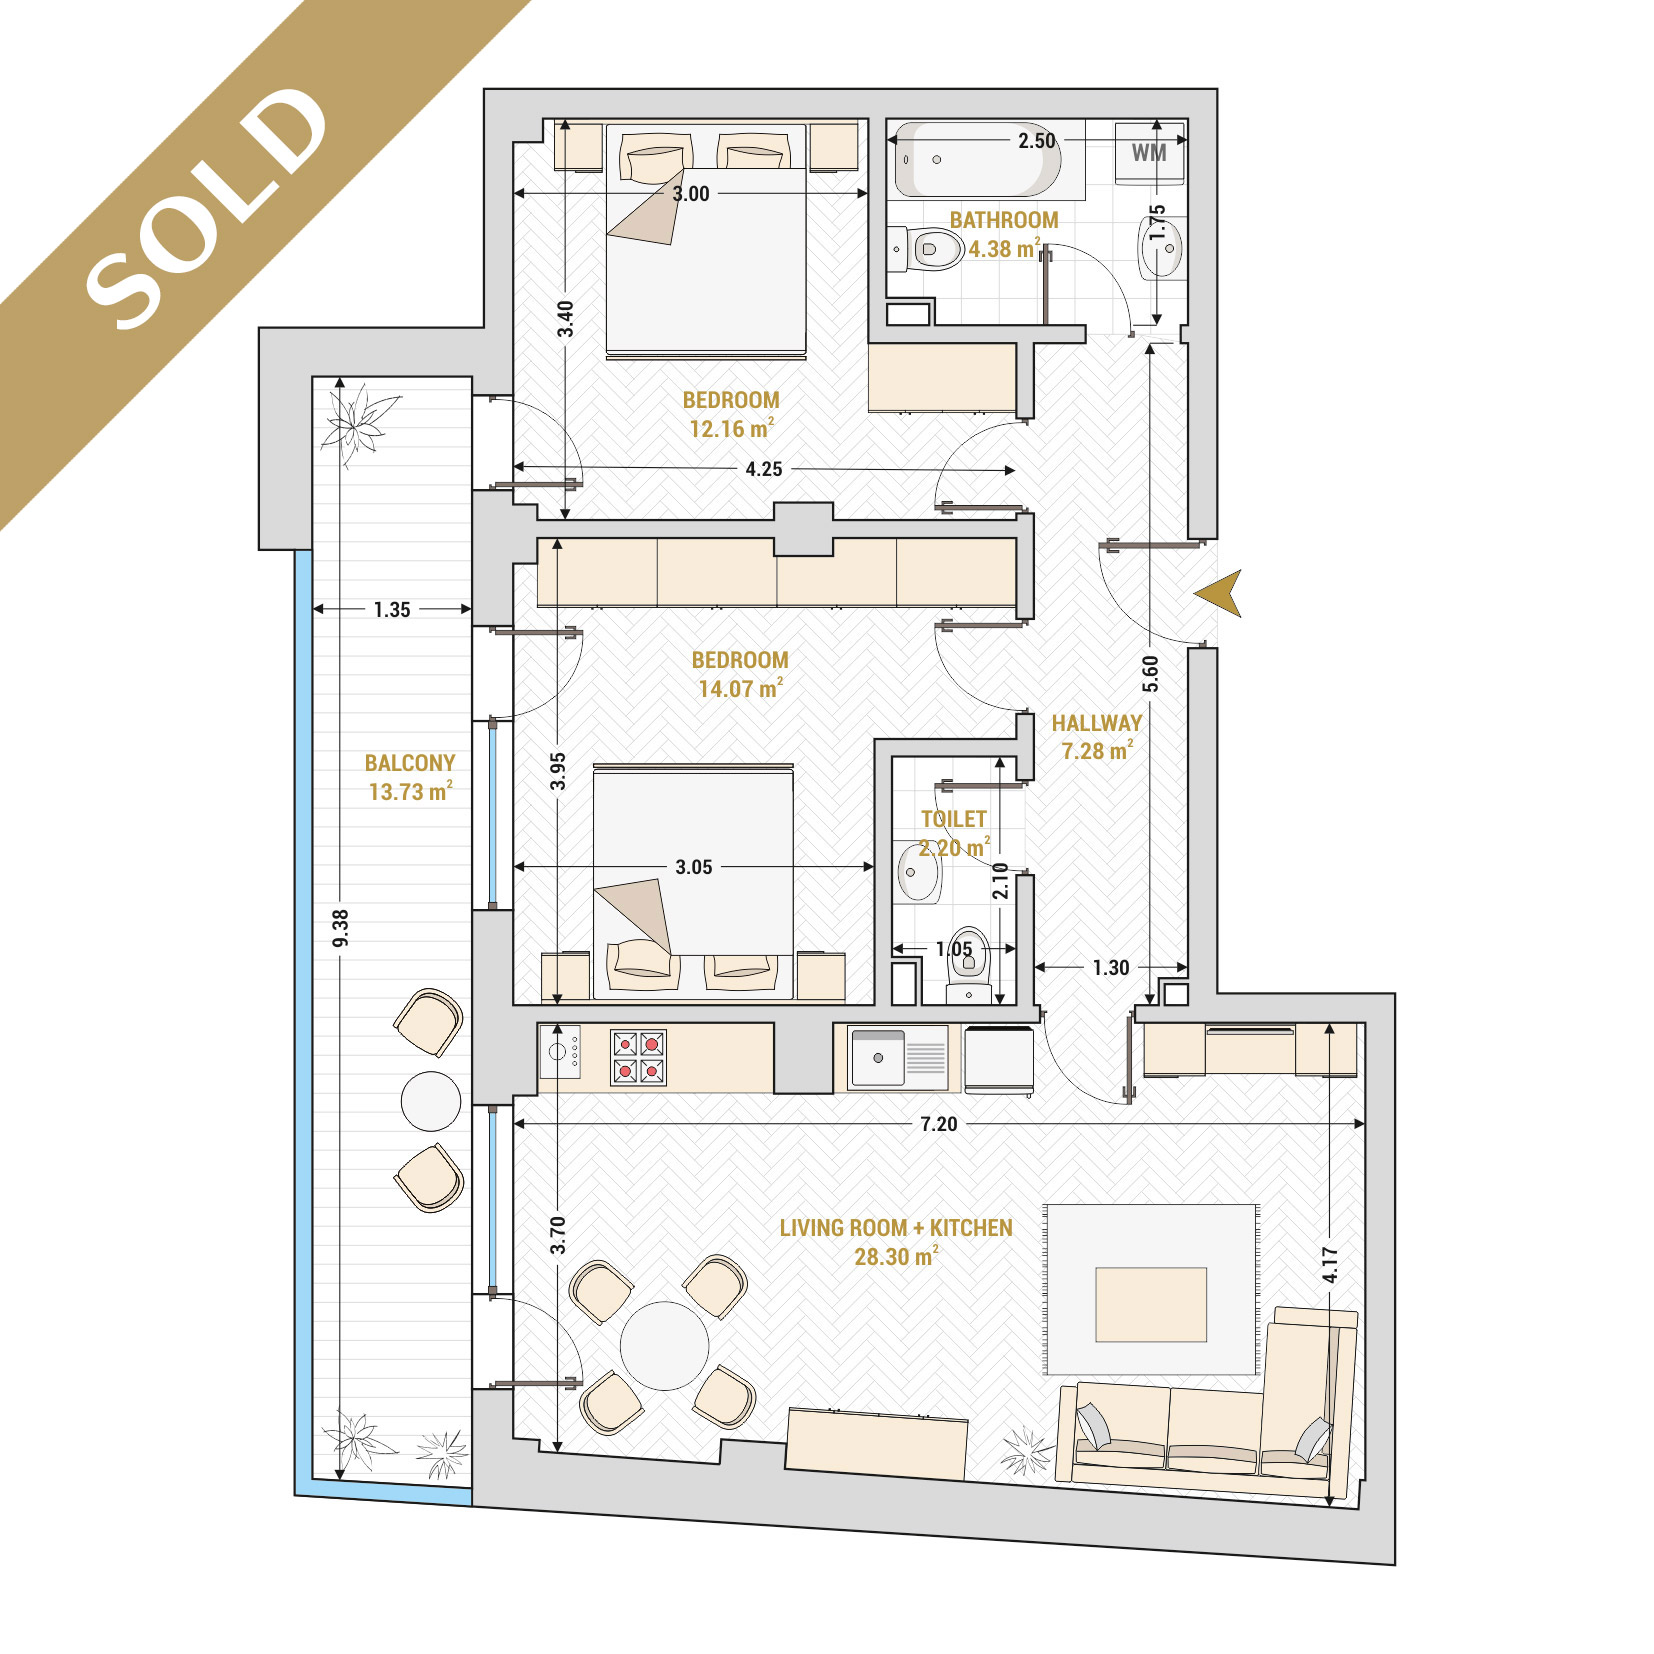 Catedral Residence - 3 Room Apartment for Sale - Bucharest - Romania - Type 4 – S2A - SOLD